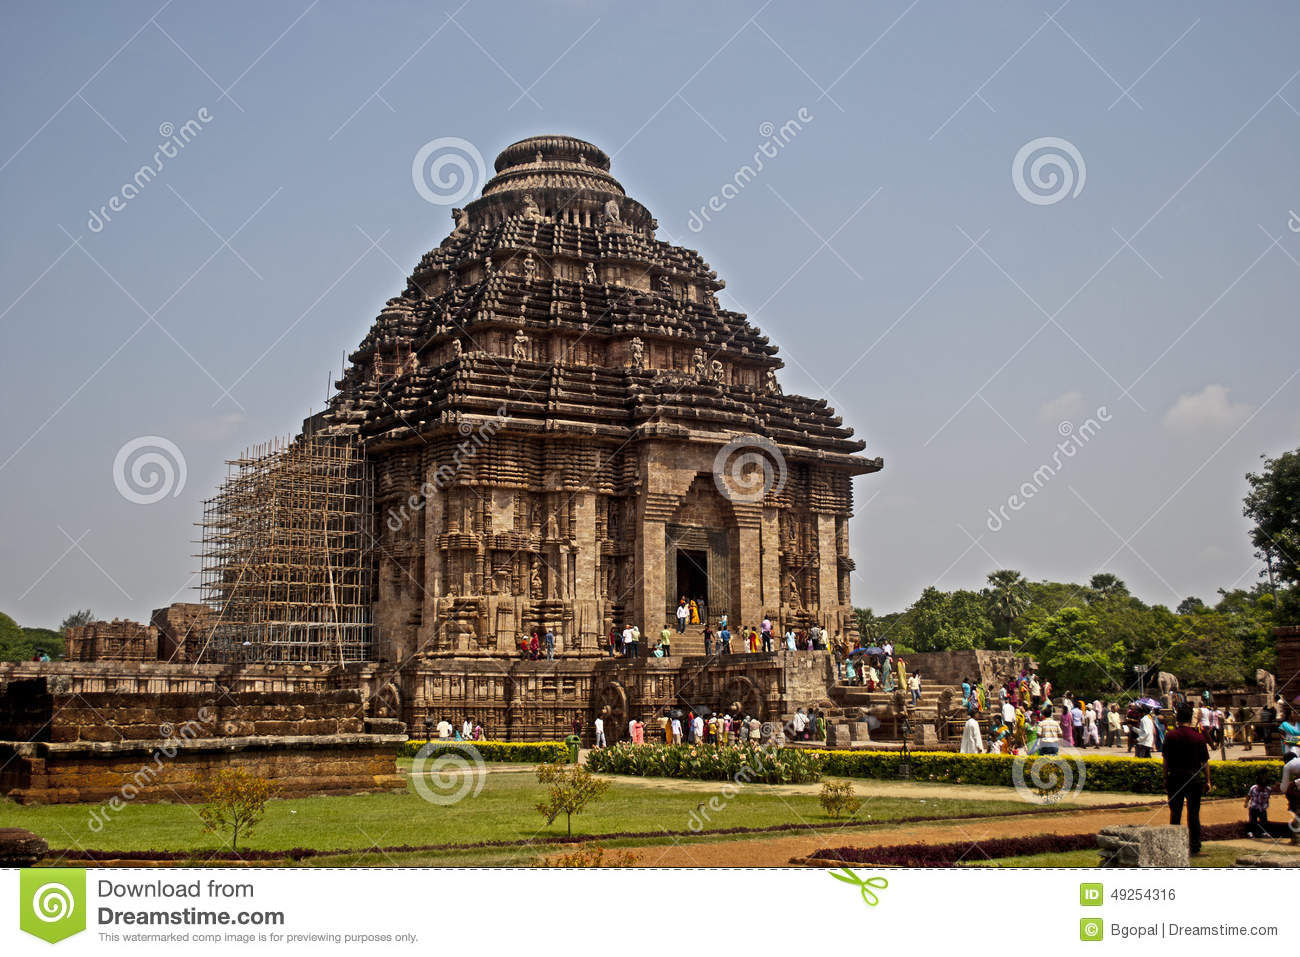 Ancient Sun Temple Of India Which Is Famous For Its Architecture Based